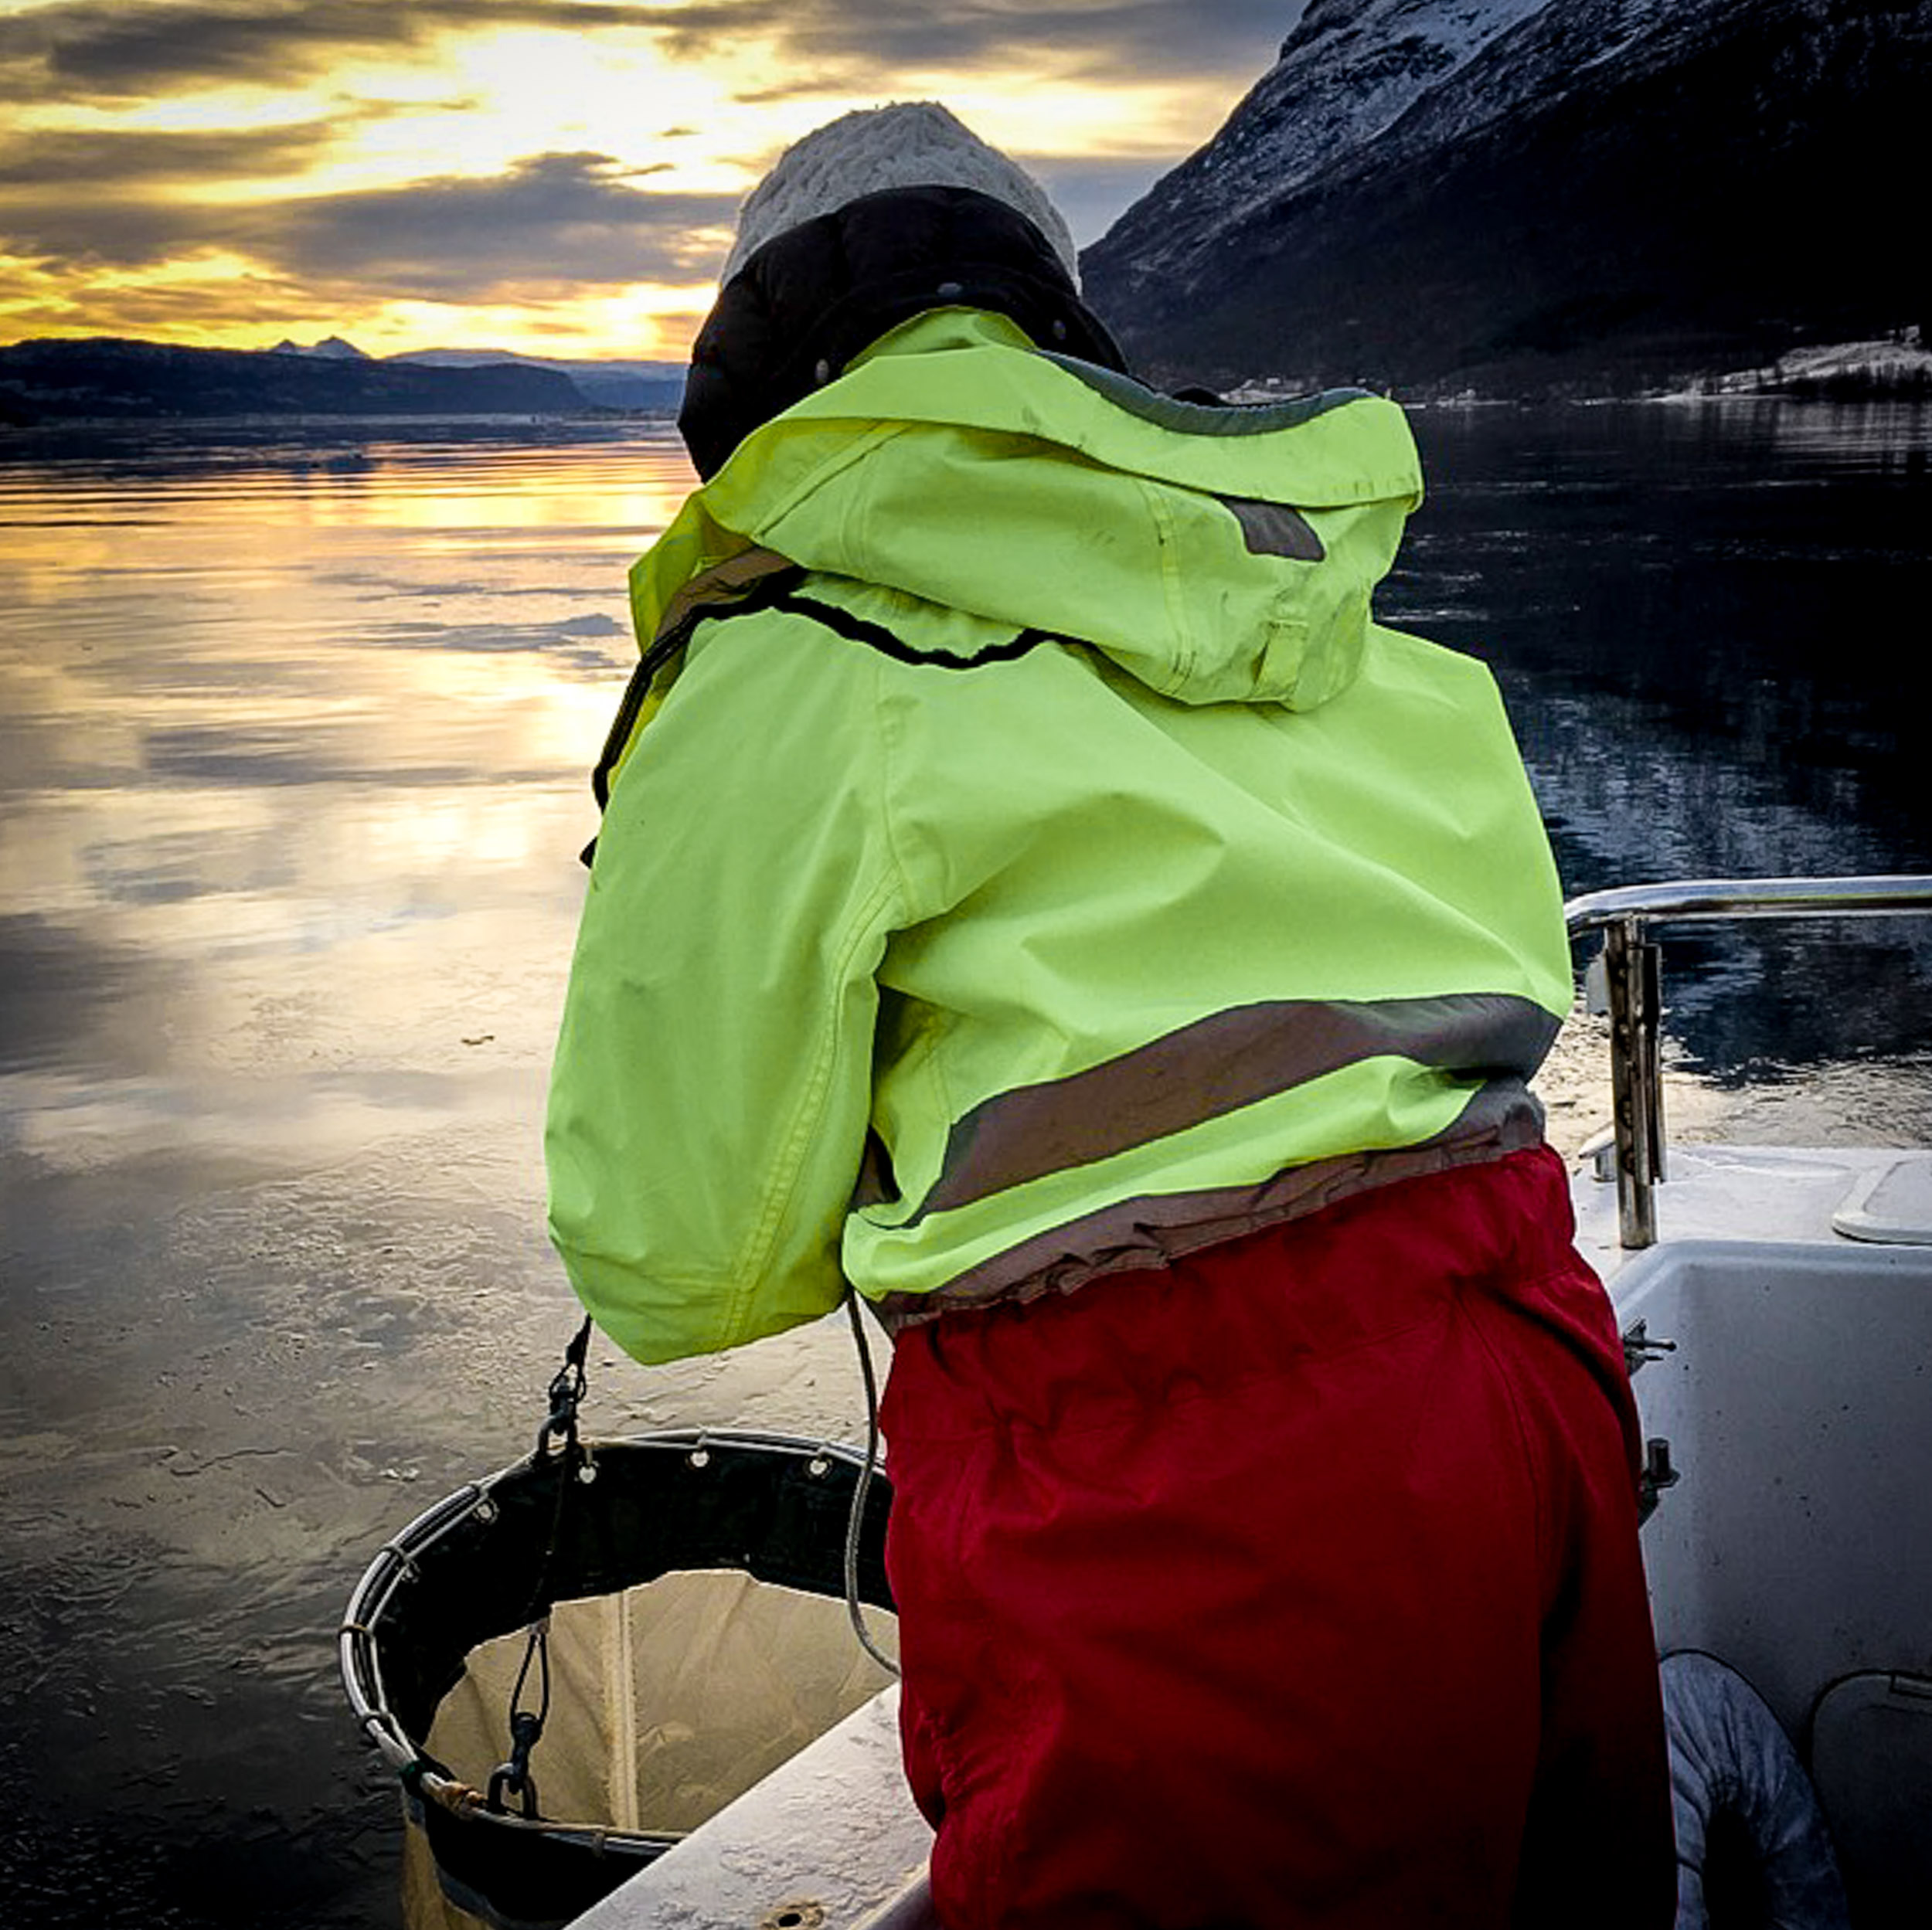 Collecting a zooplankton sample in Målselvfjord. JONAA©Guttorm Christensen